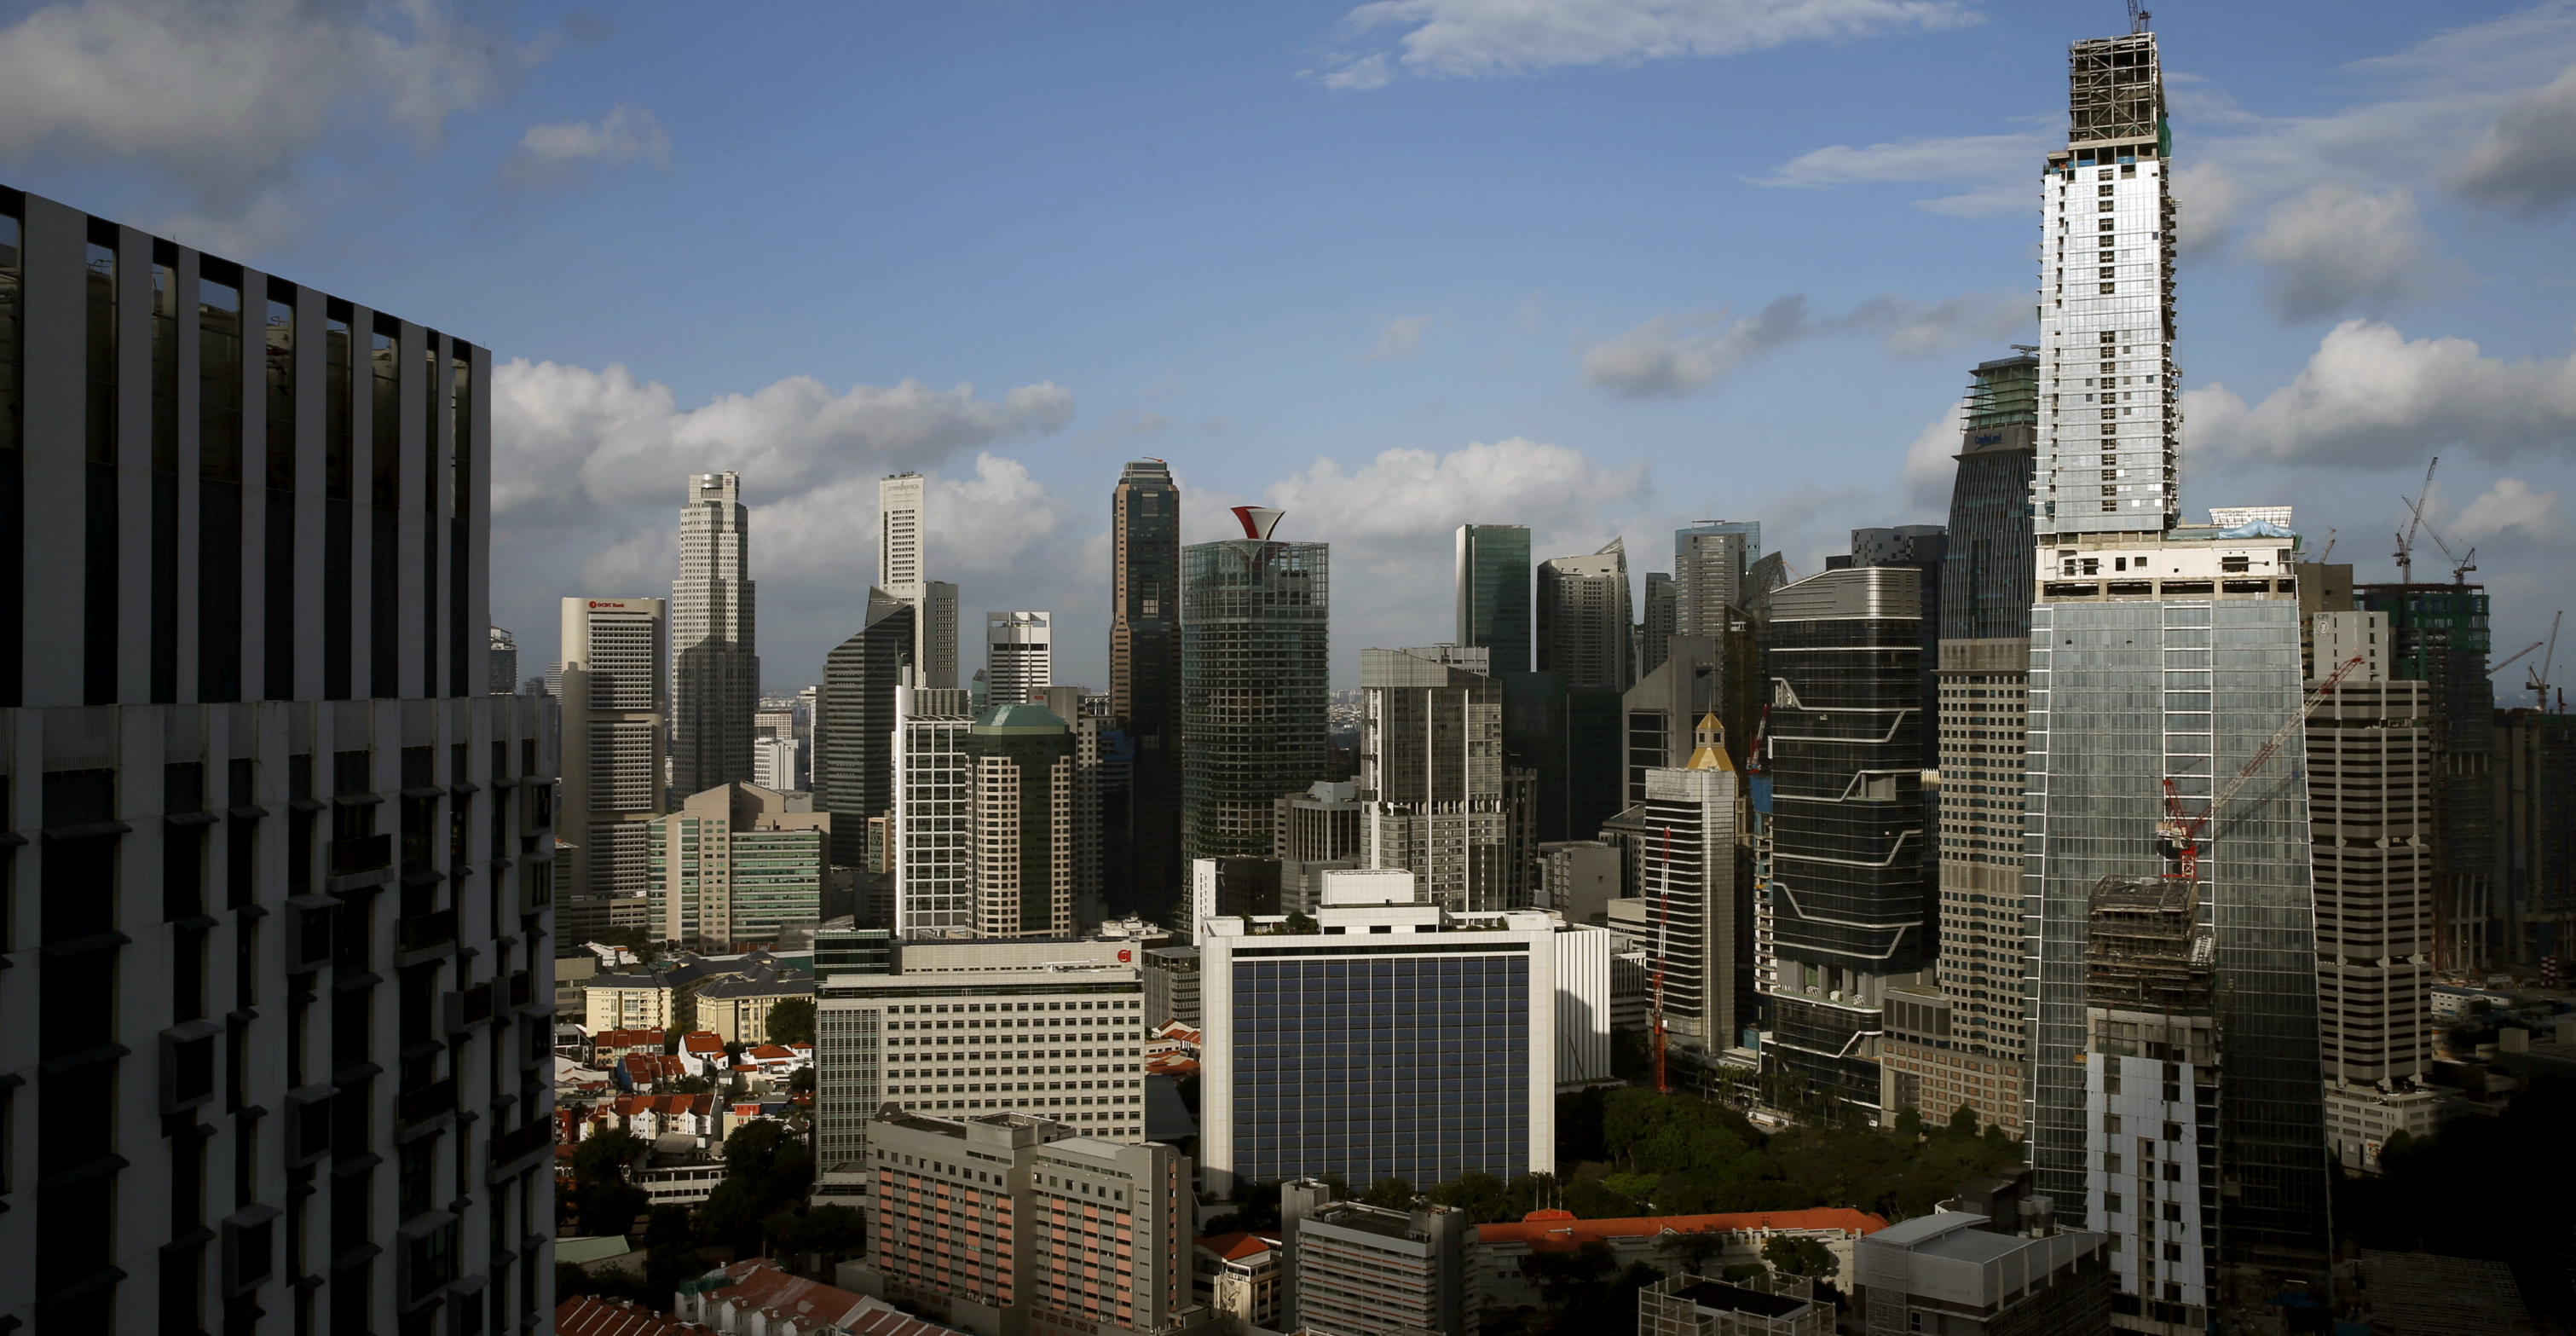 James Dyson bought the three-storey penthouse at the top of Singapore's tallest building, Tanjong Pagar Centre (right), for S$73.8 million (US$54.2 million).  Photo: Reuters